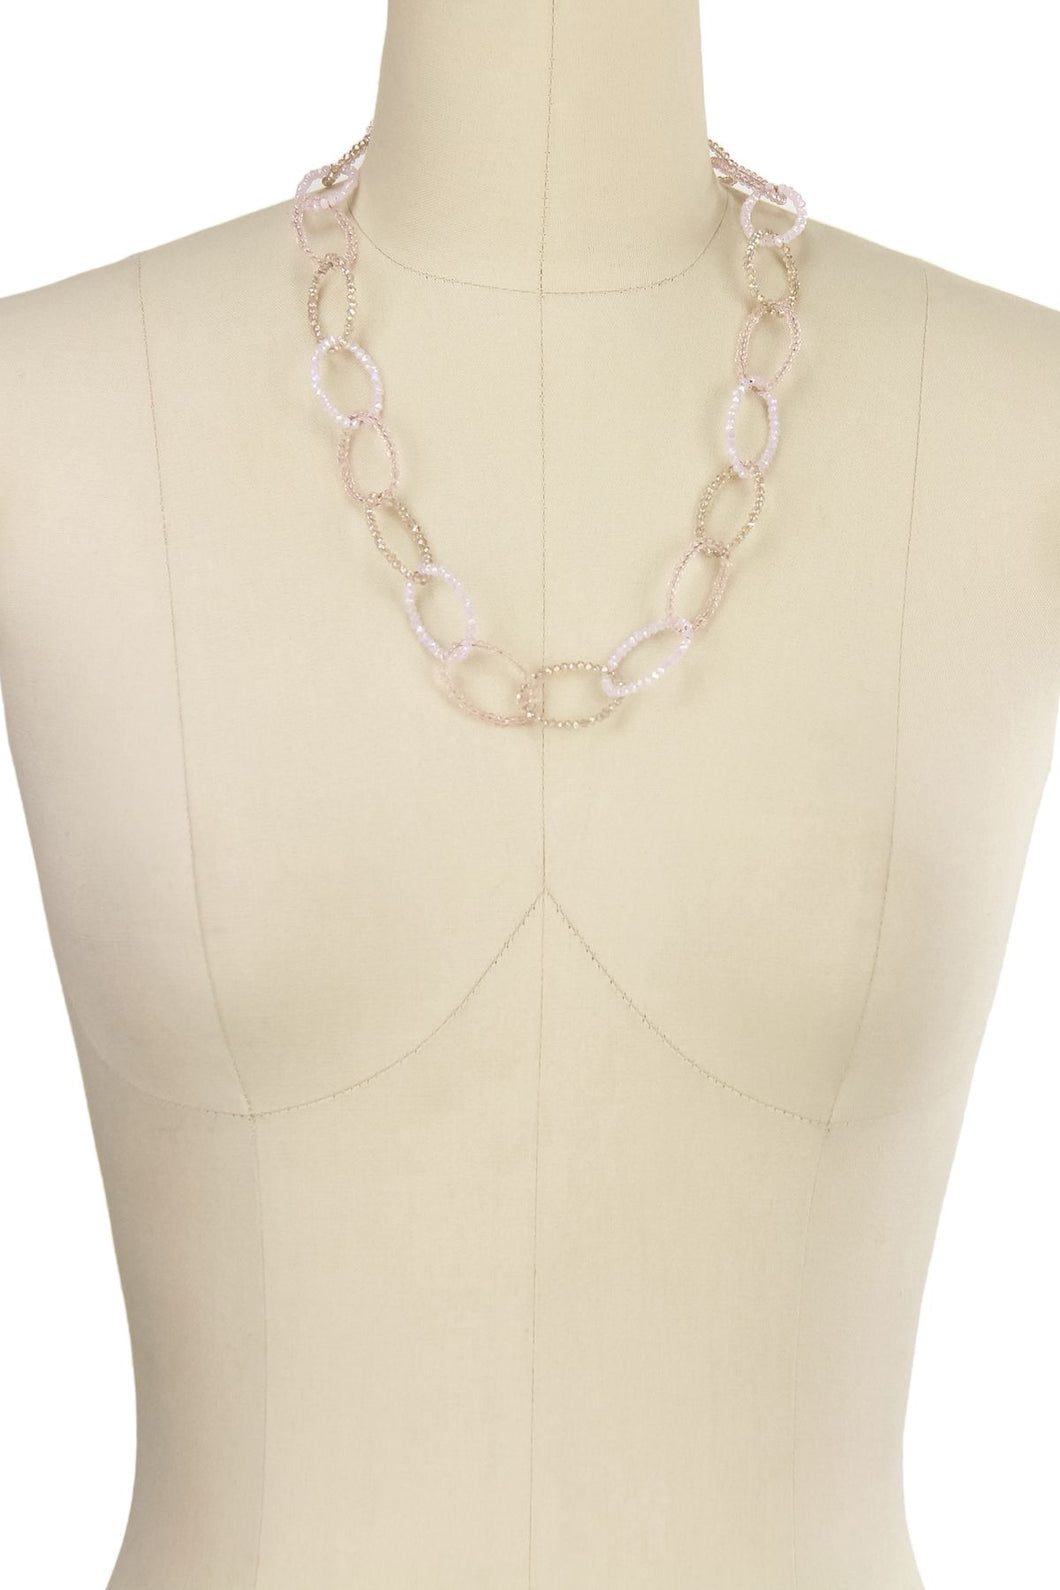 Sampark Oval Linked Collar Nec